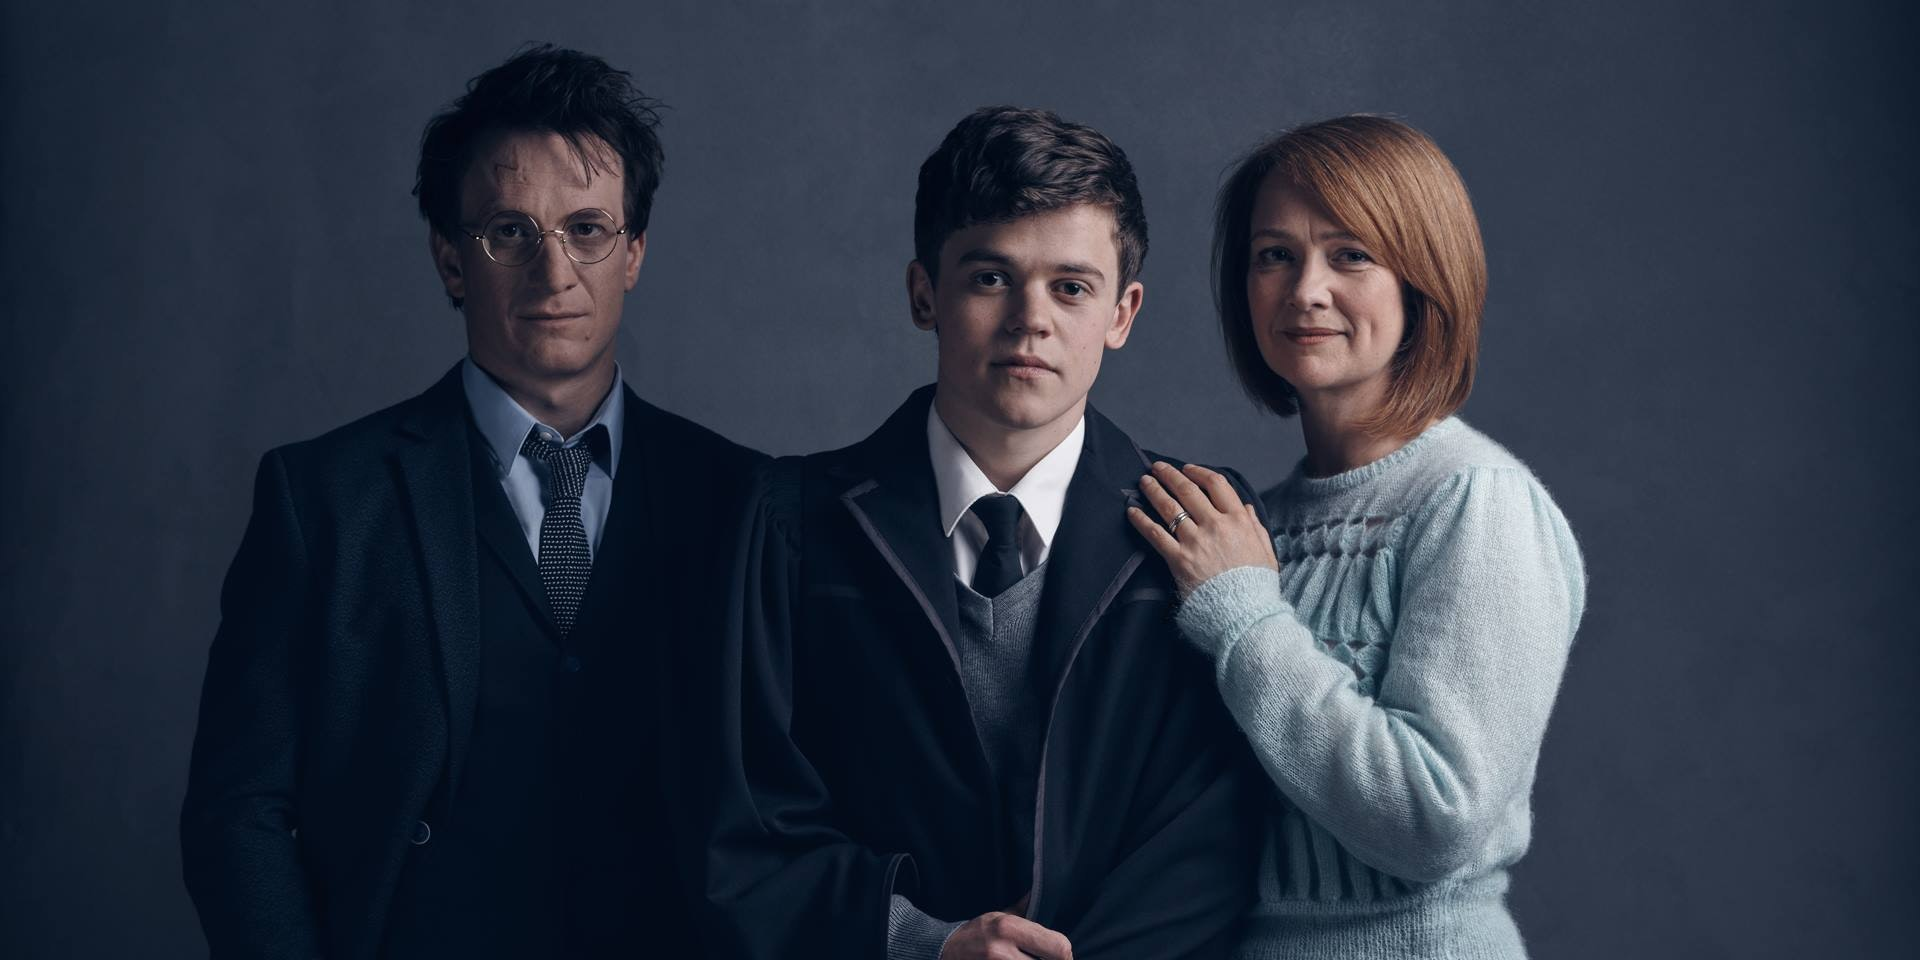 The Most WTF moments in 'Harry Potter and the Cursed Child'